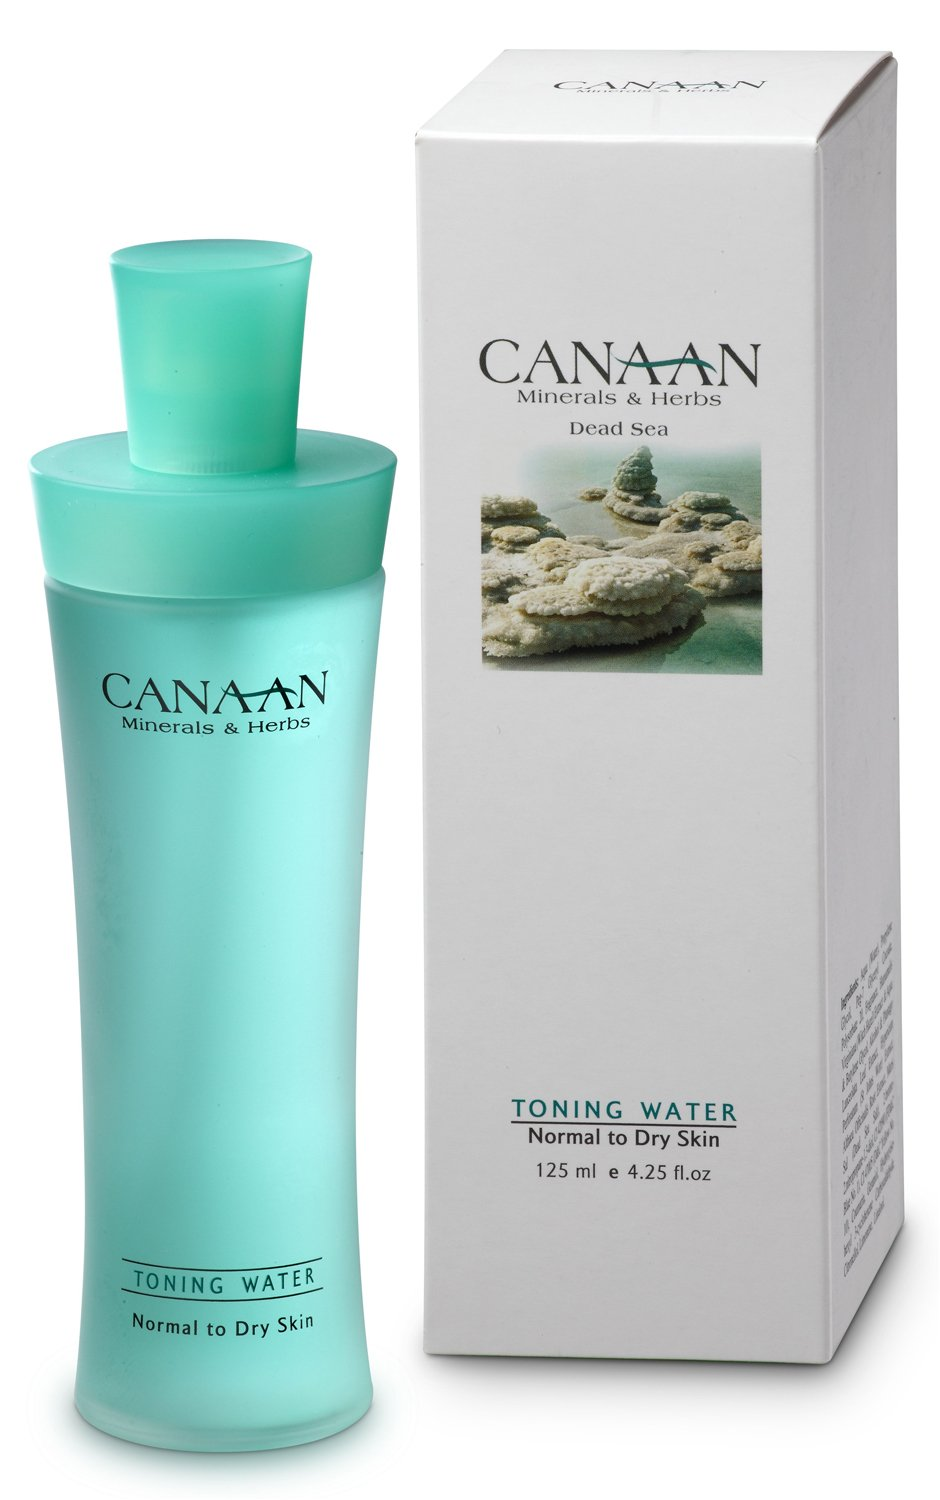 CANAAN Minerals & Herbs Dead Sea - Toning water (normal to dry skin) 125ml CHIC Cosmetics Ind. LTD.